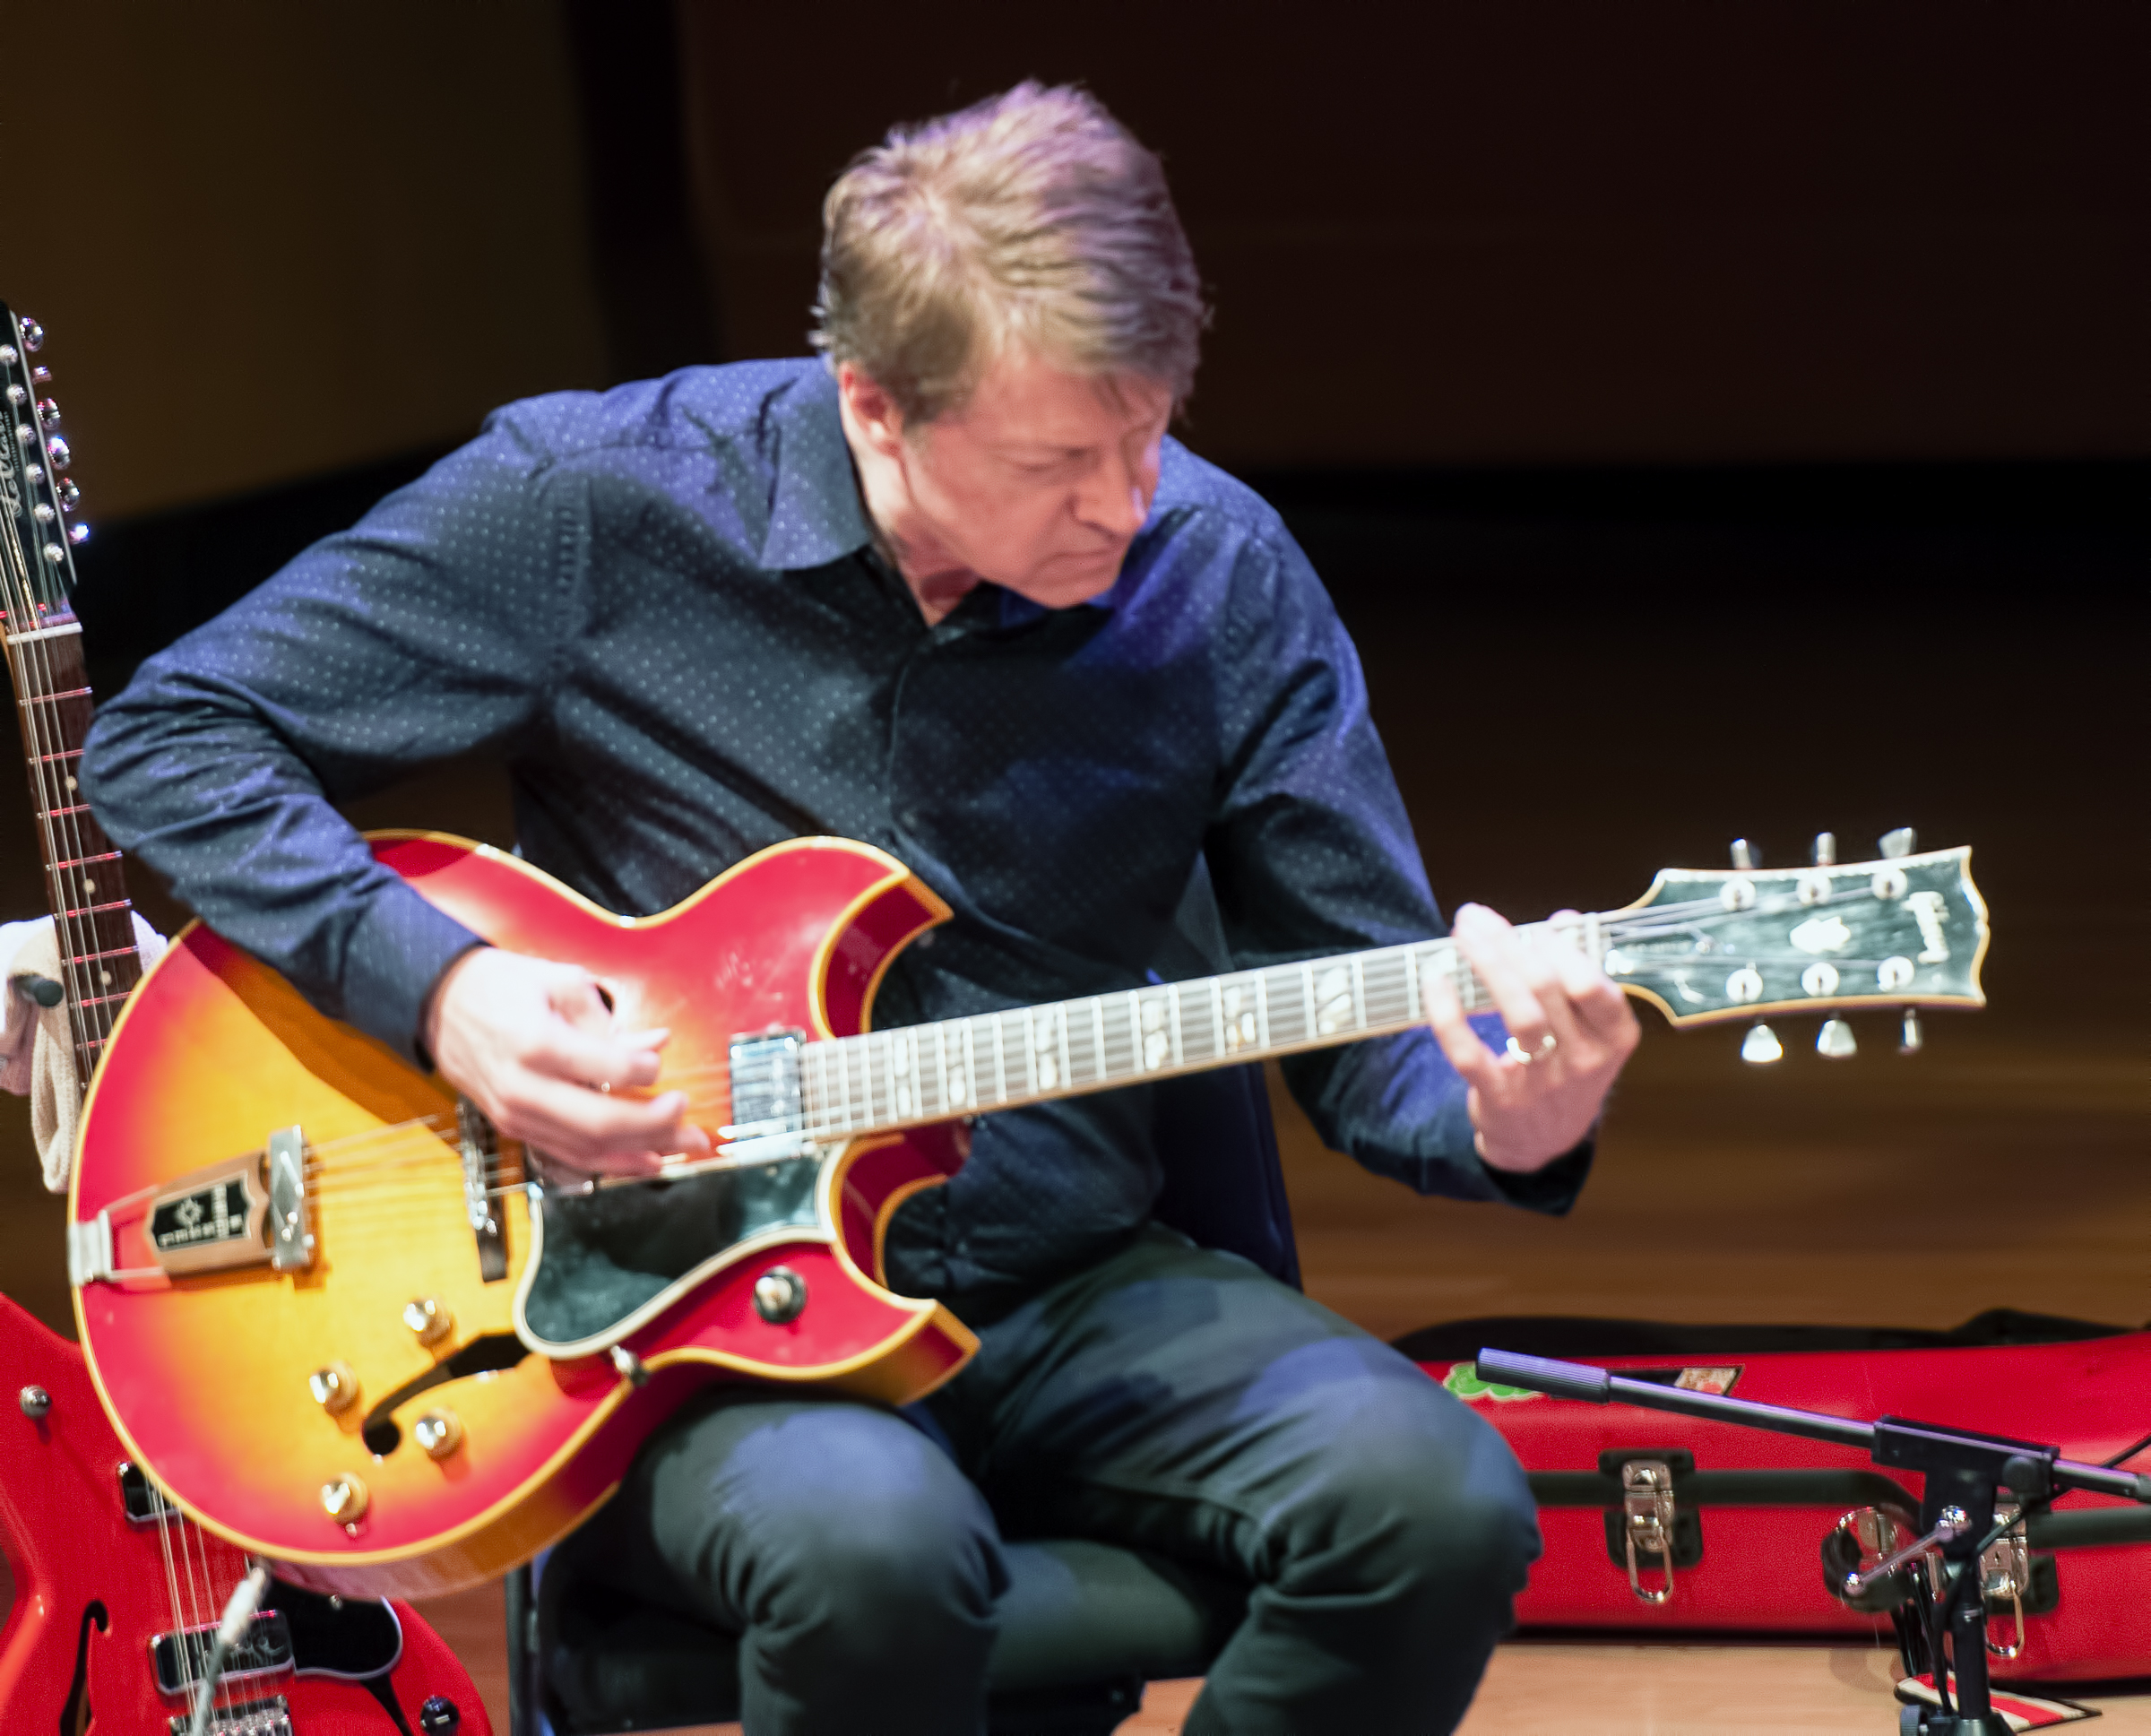 Nels Cline with Julian Lage at the Musical Instruments Museum (Mim) in Phoenix